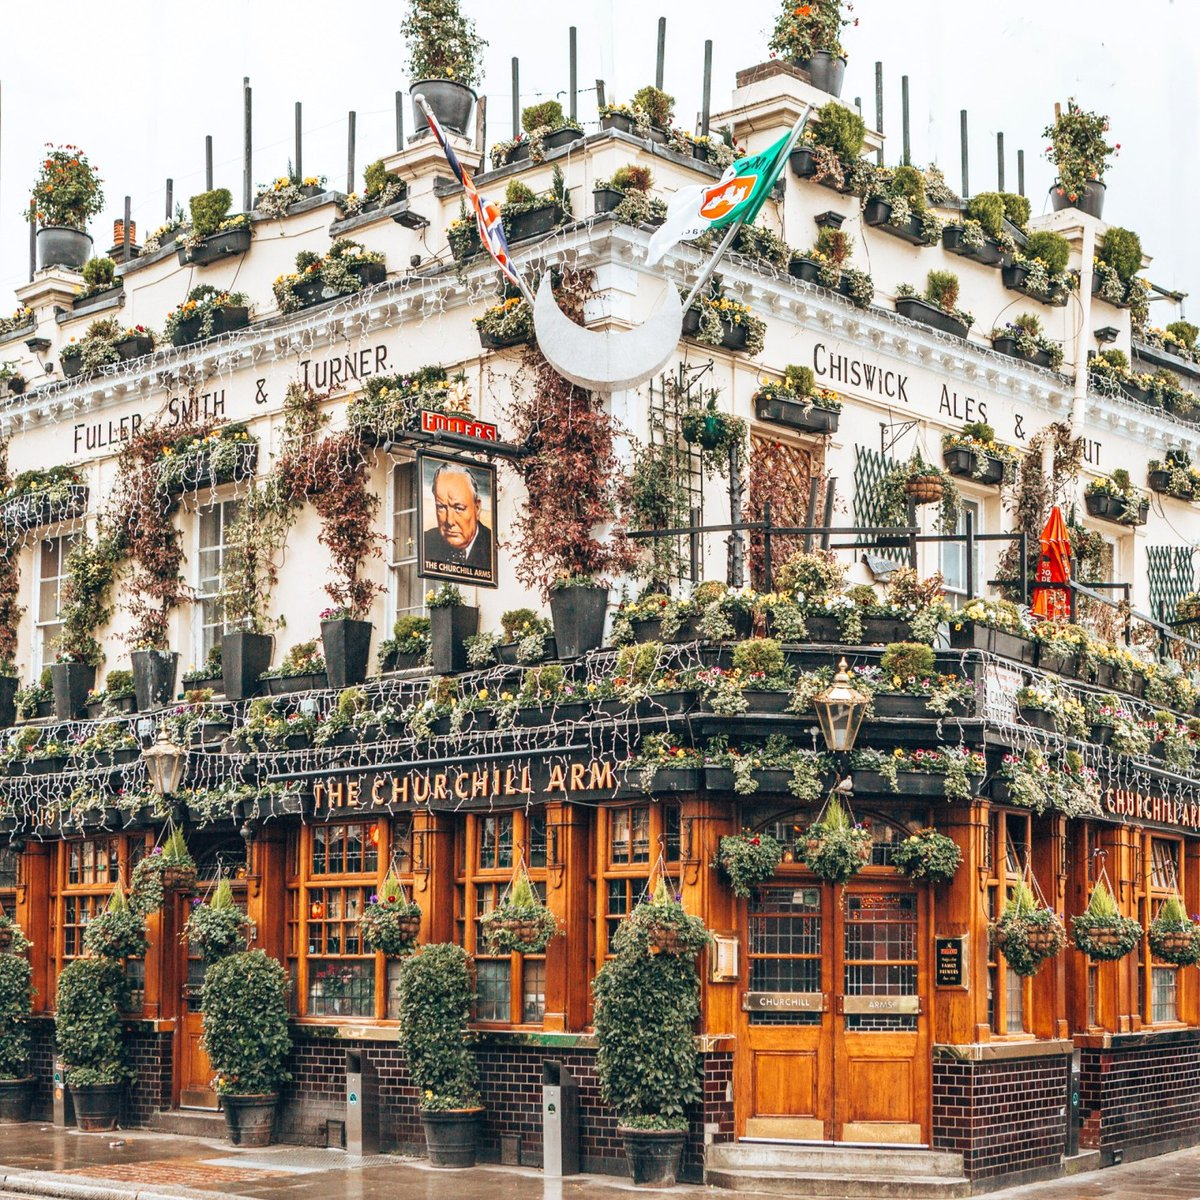 20 Photos to Make You Fall in Love with London - Nina Tekwani bit.ly/2v6z73y